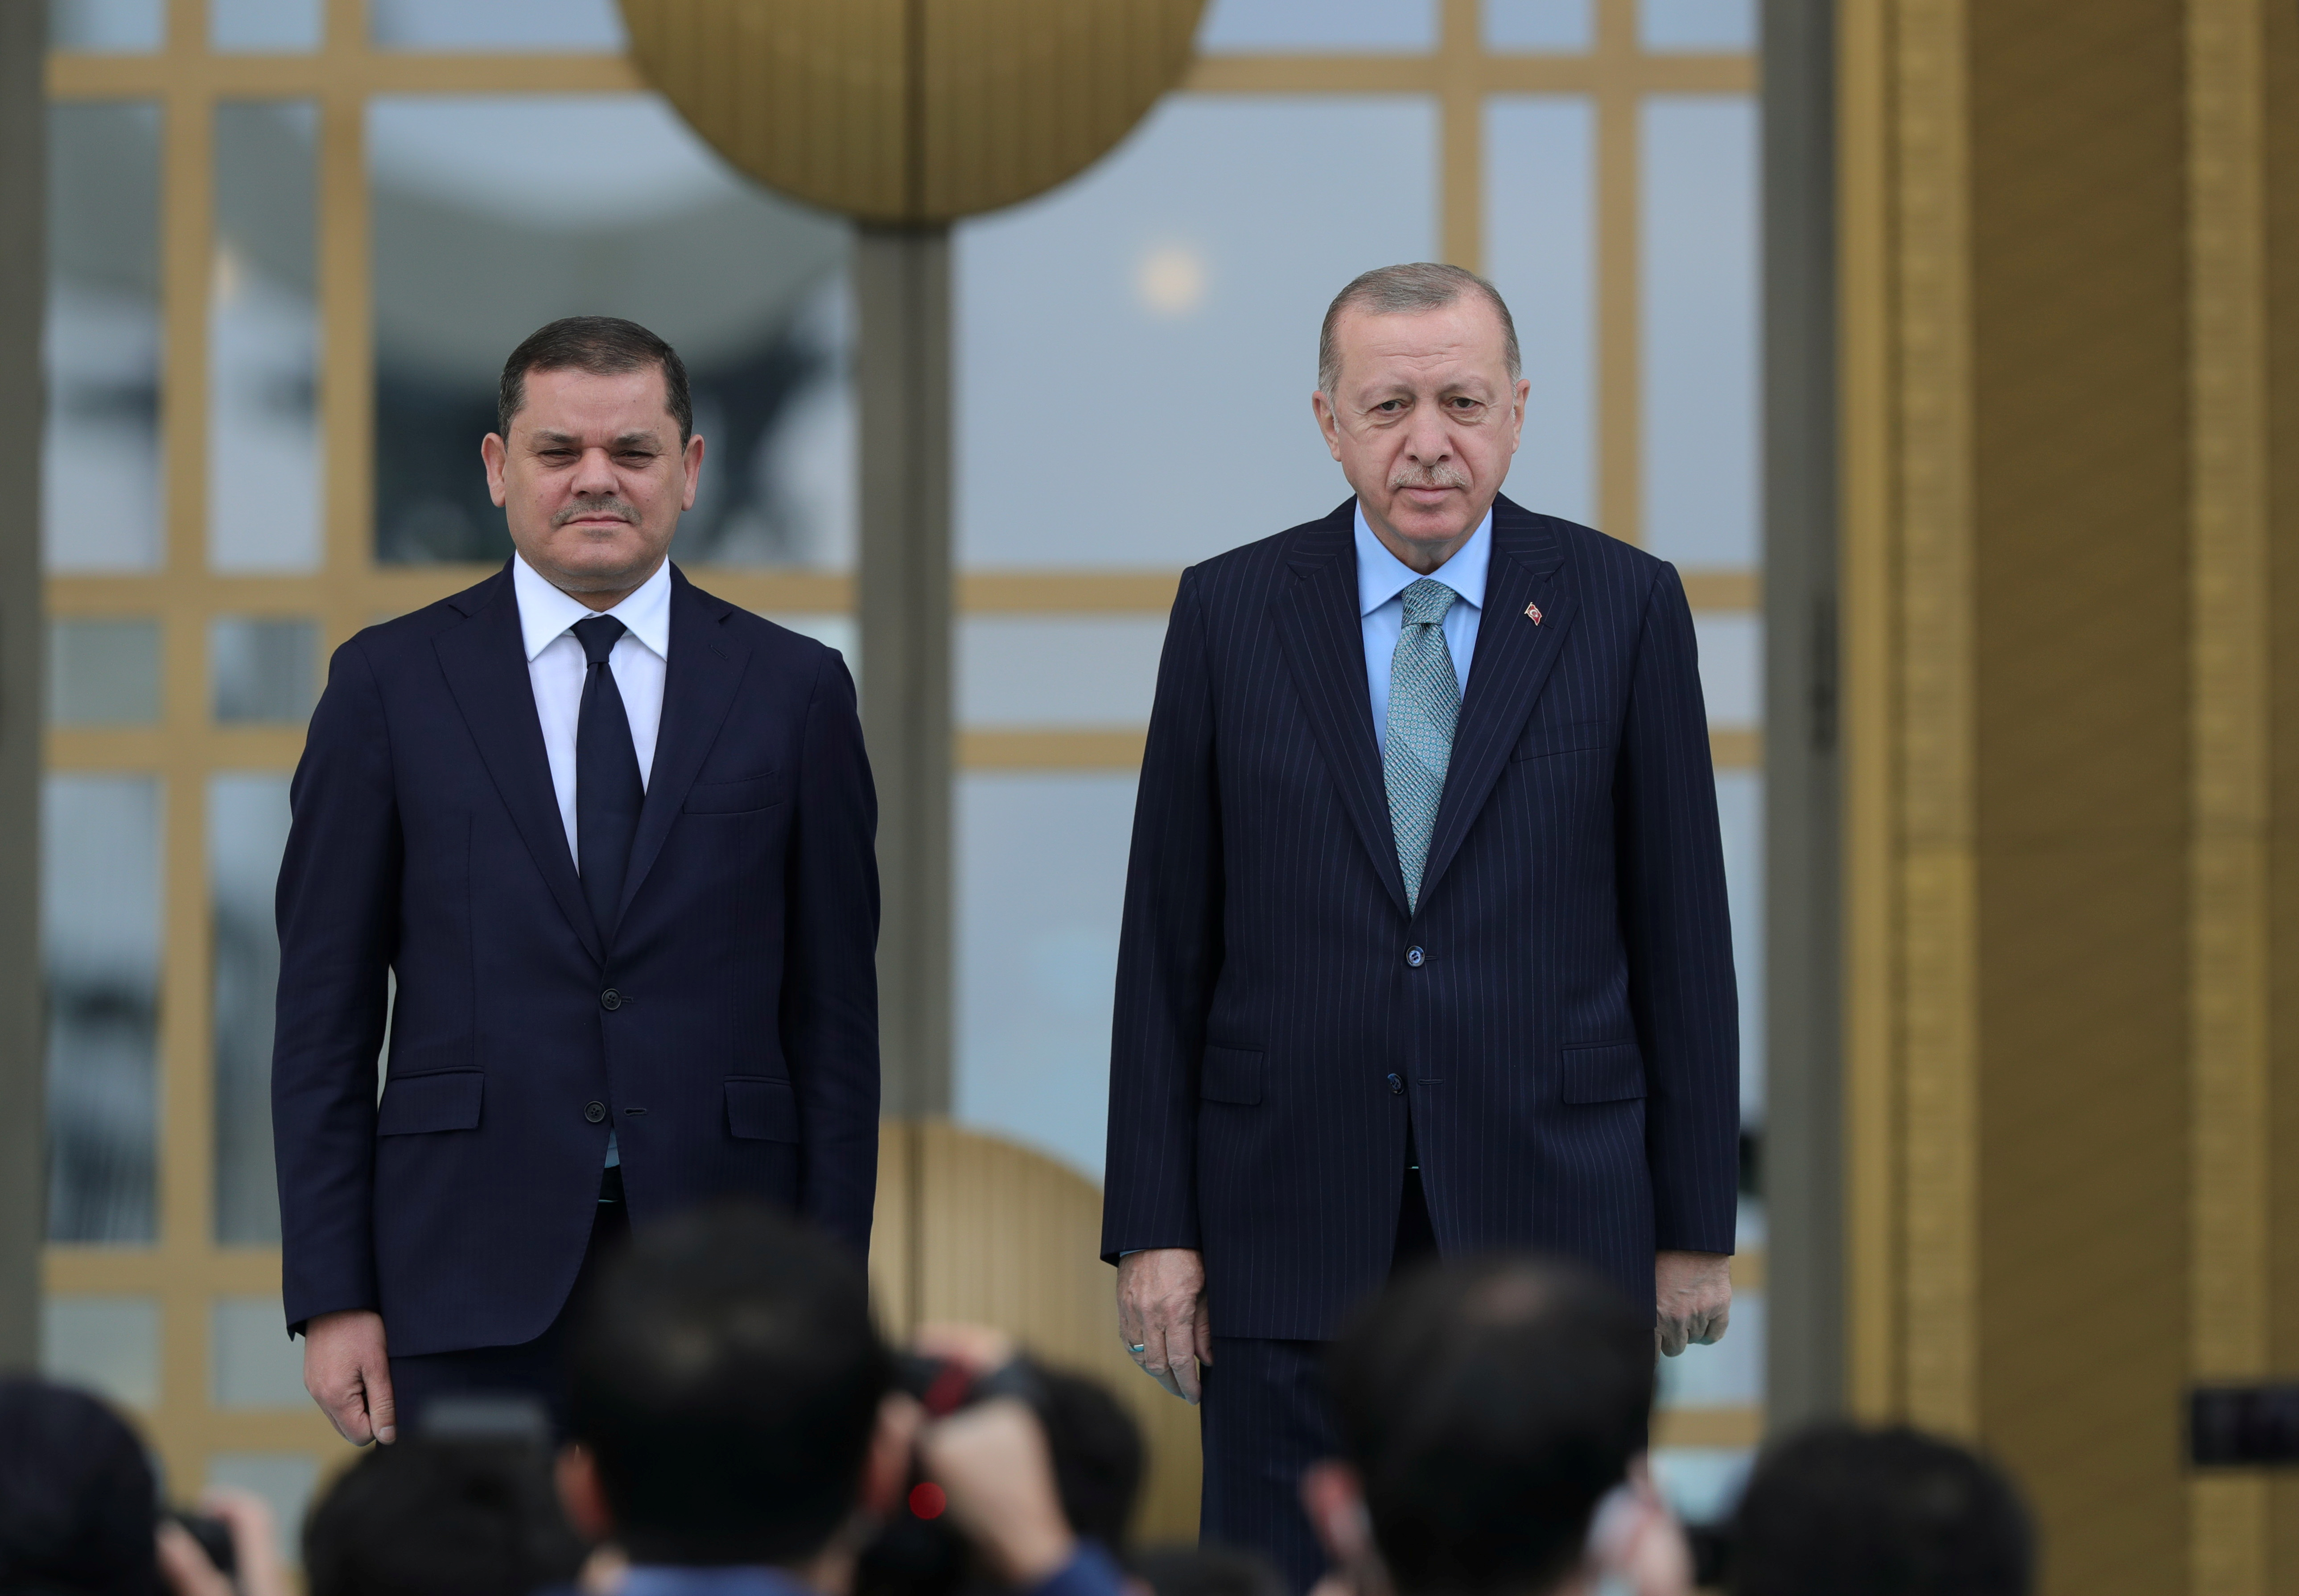 Turkish President Tayyip Erdogan and Libyan Prime Minister Abdulhamid?Dbeibeh attend a welcoming ceremony at the Presidential Palace?in Ankara, Turkey April 12, 2021. Presidential Press Office/Handout via REUTERS